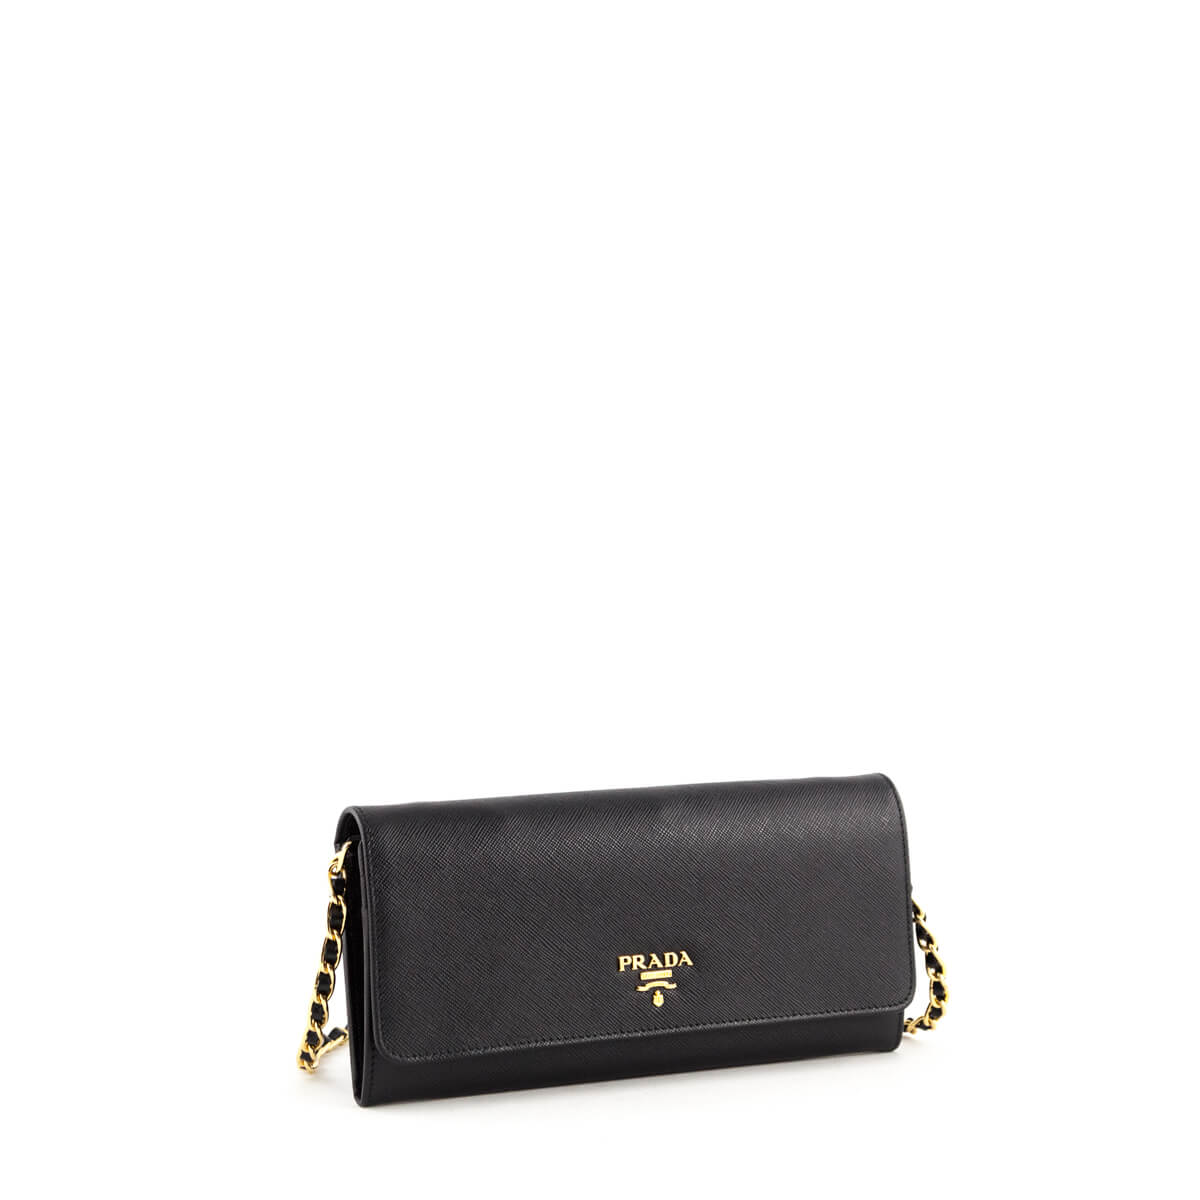 b28382f6542a ... Prada Black Saffiano Metal Oro Wallet on Chain - LOVE that BAG -  Preowned Authentic Designer ...